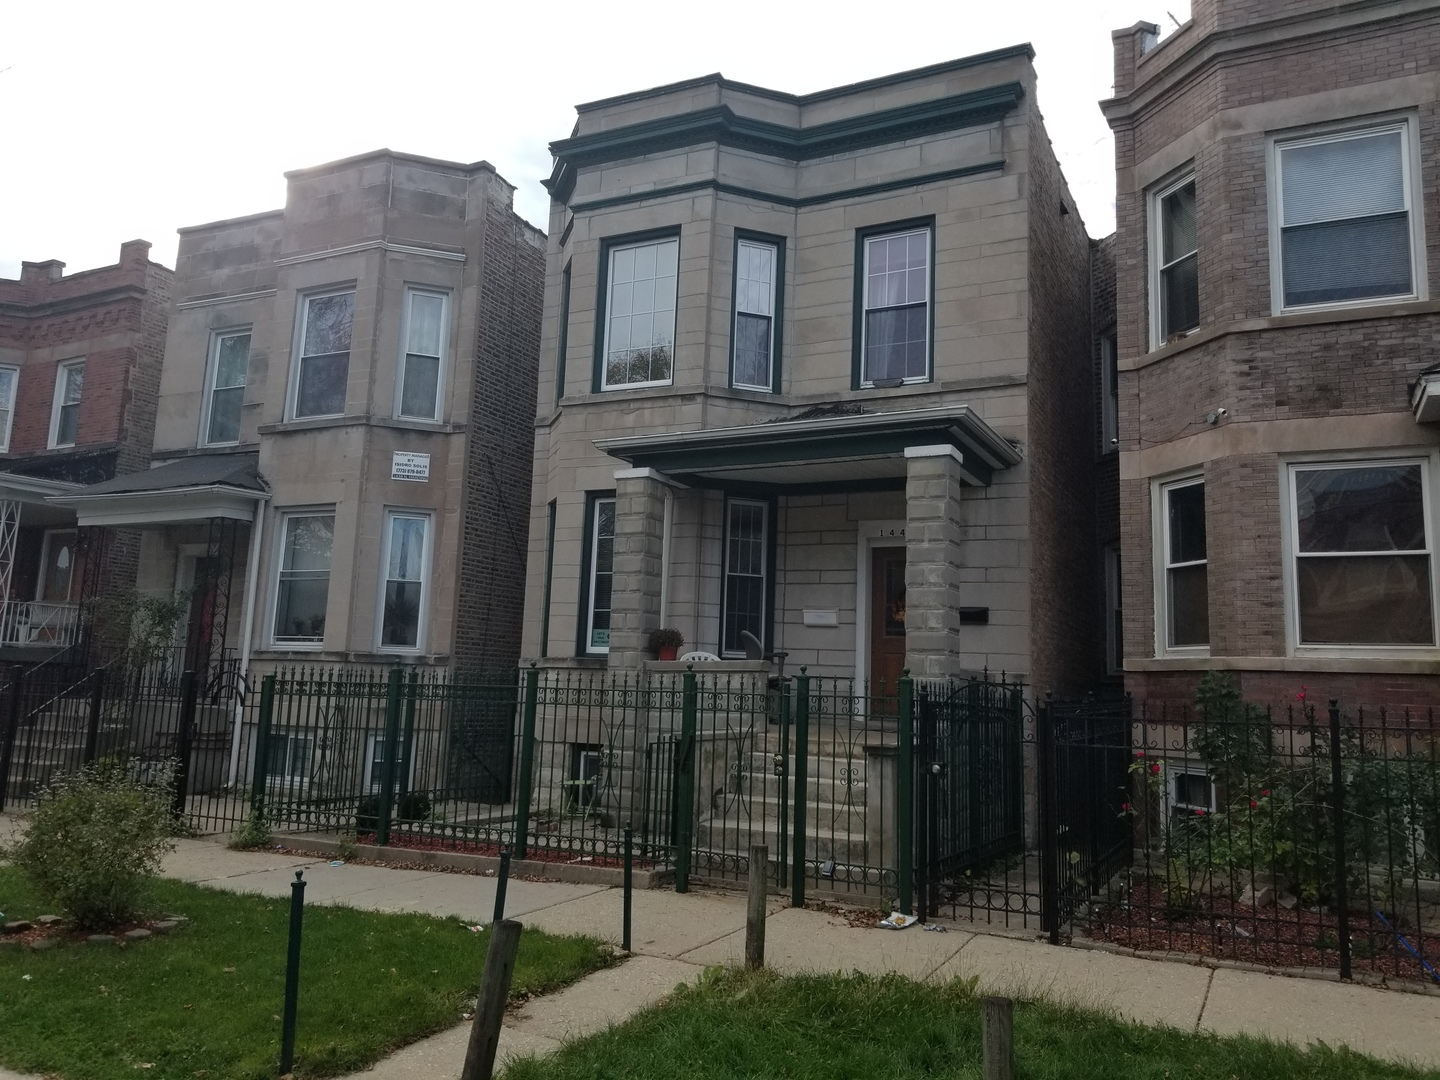 North Harding Ave., CHICAGO, IL 60651